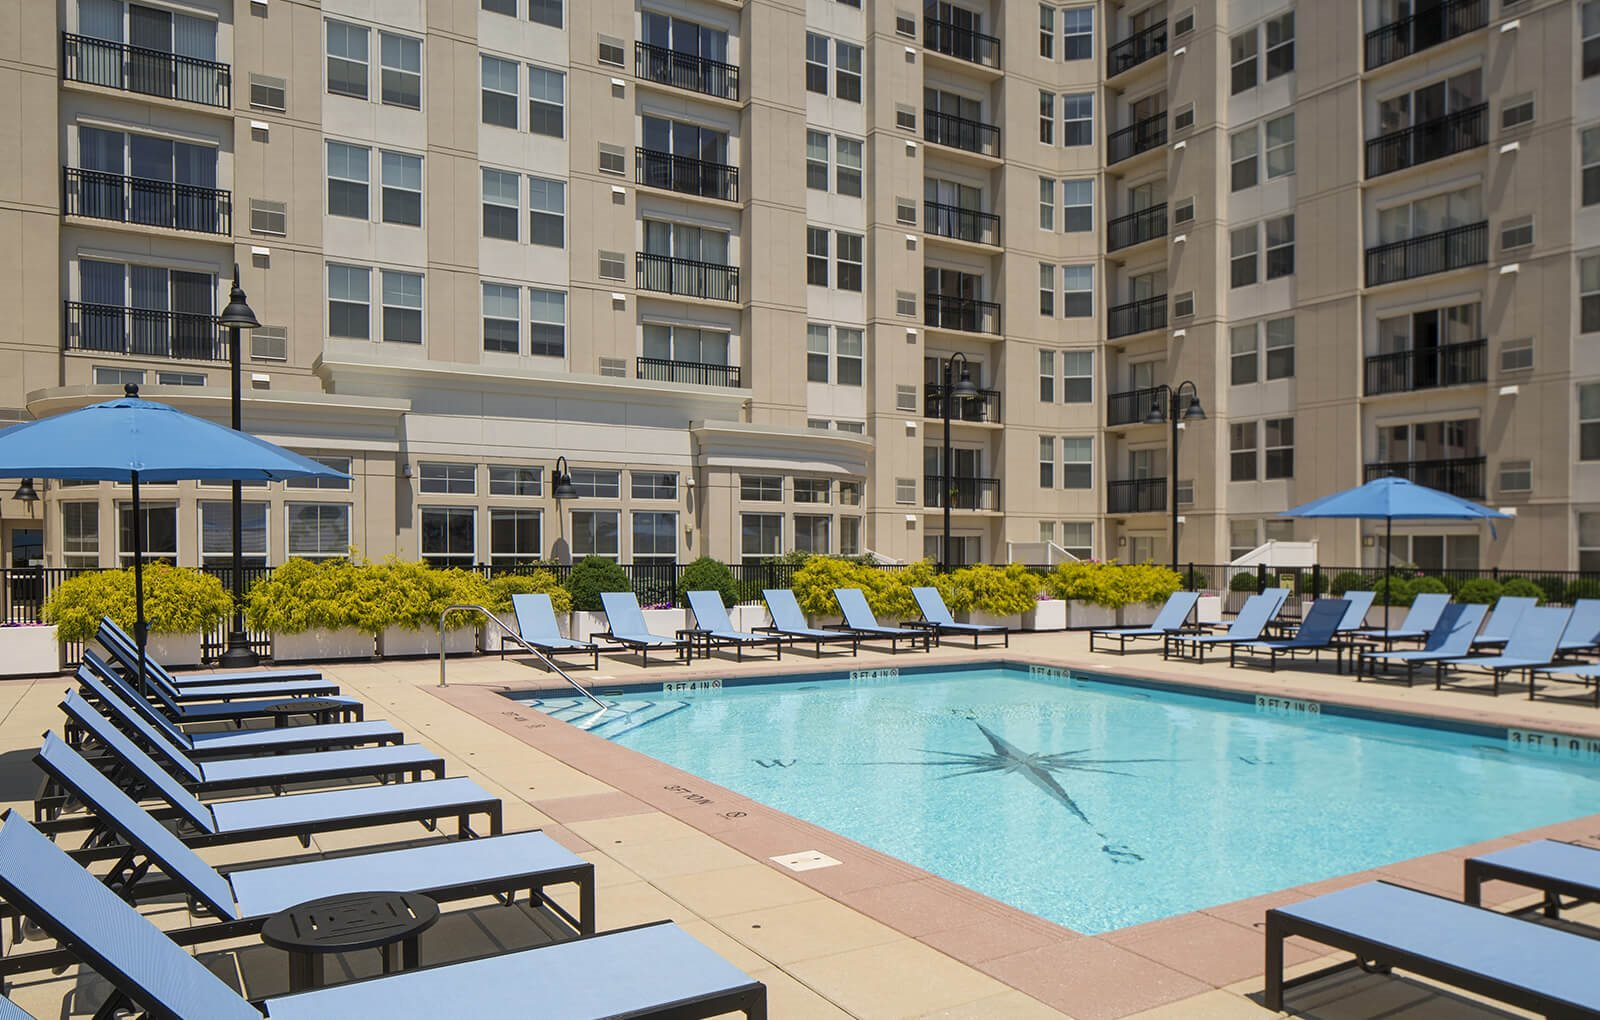 Sparkling Outdoor Swimming Pool at 101 Park Place, Connecticut